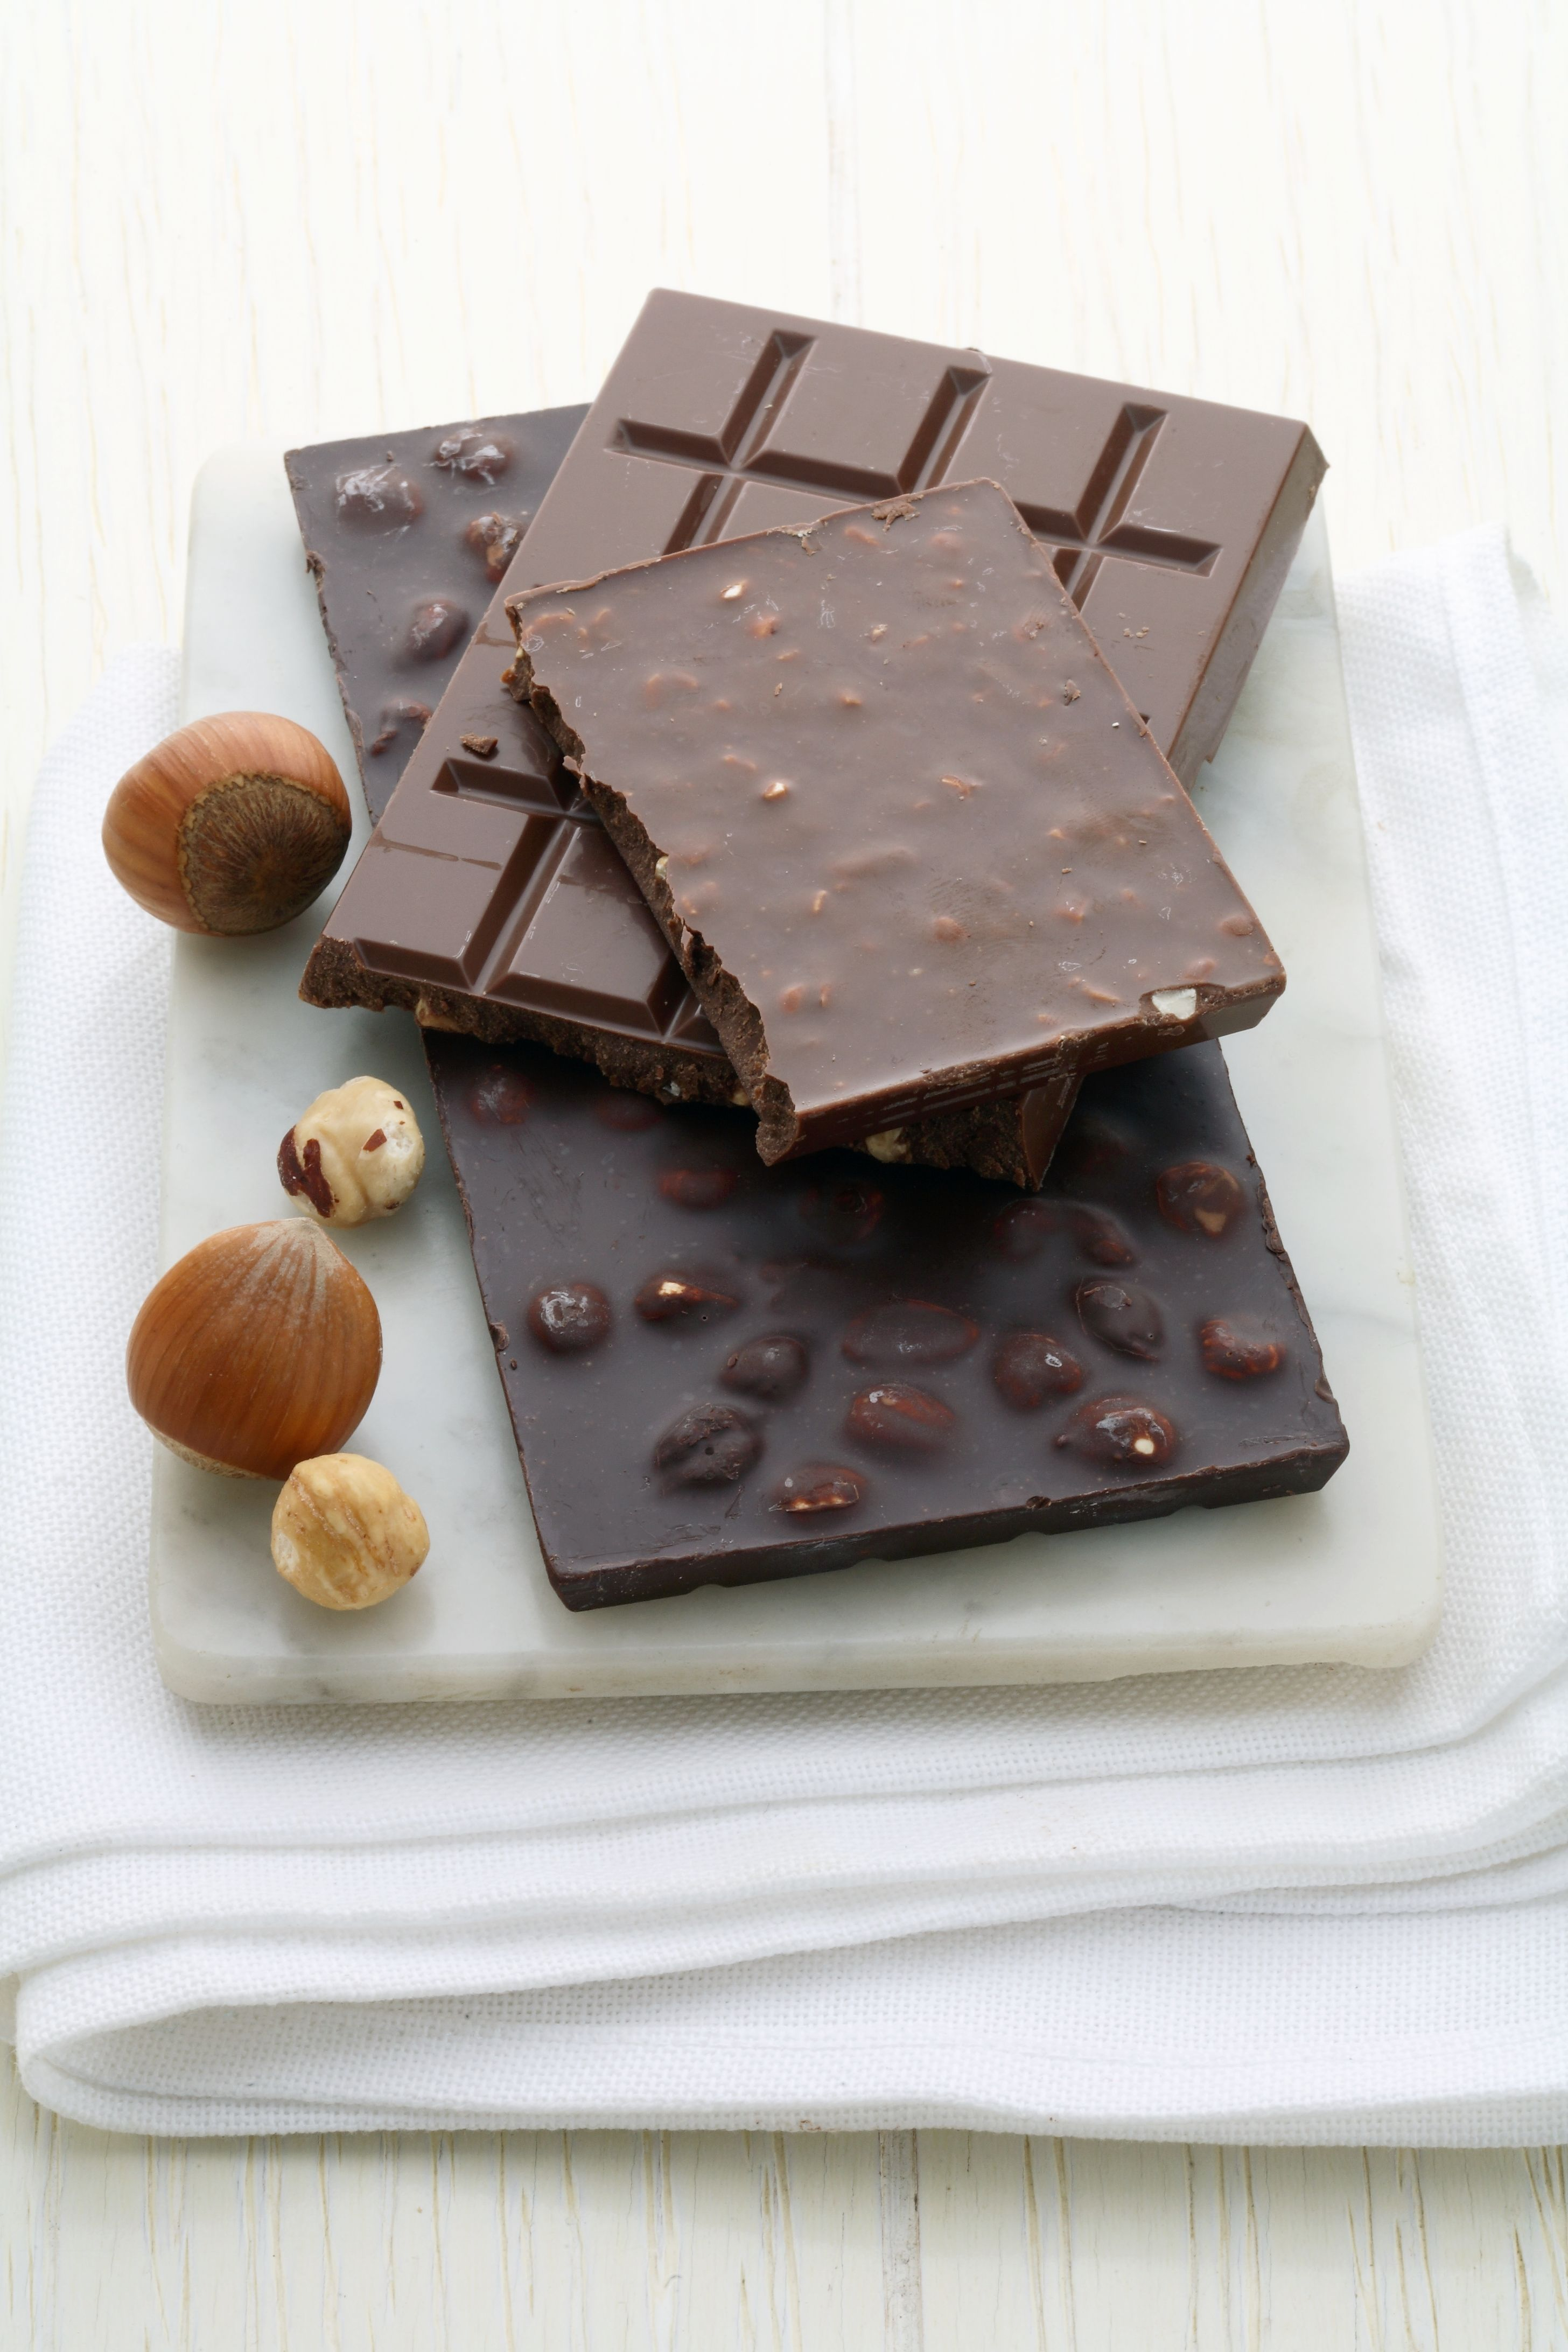 Best News Ever: Milk Chocolate Is About to Get Way Healthier